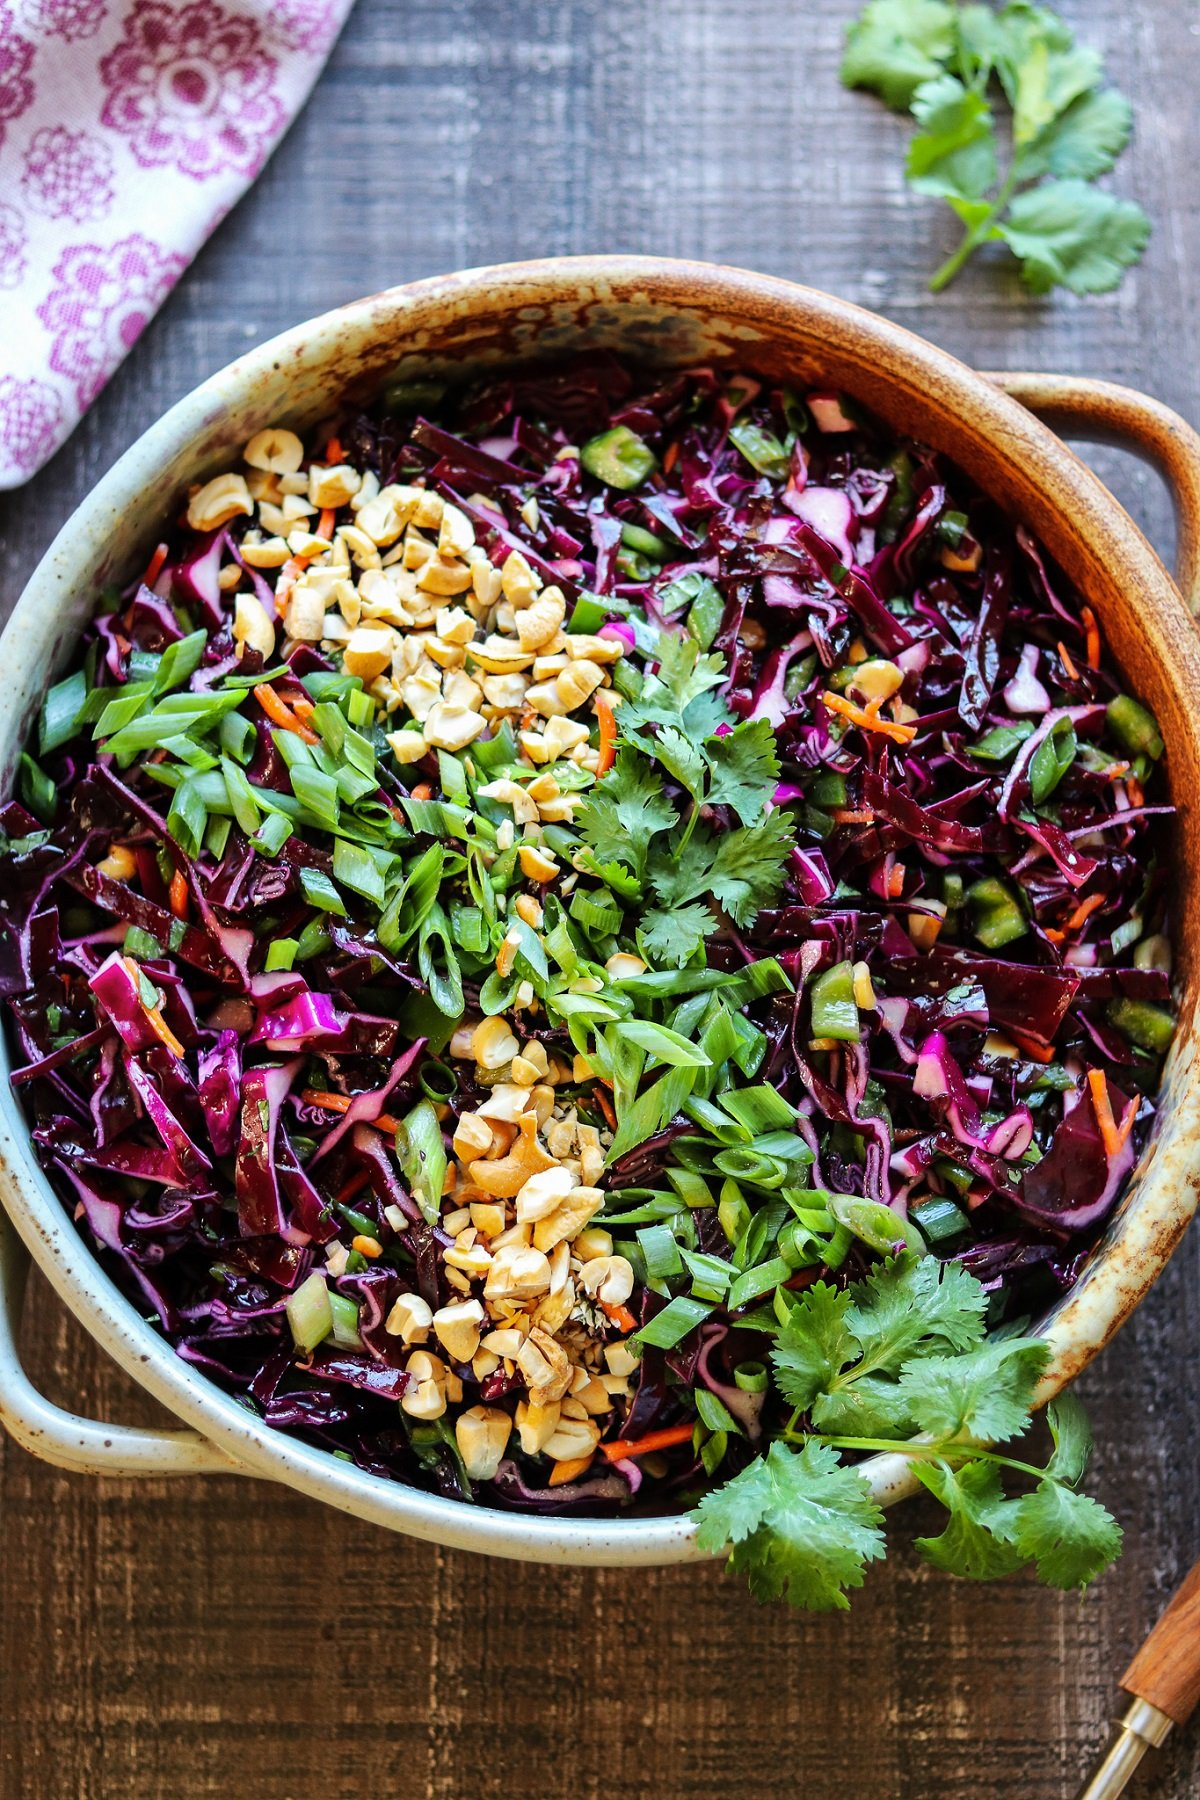 Asian slaw topped with cashews, cilantro and green onion slices.